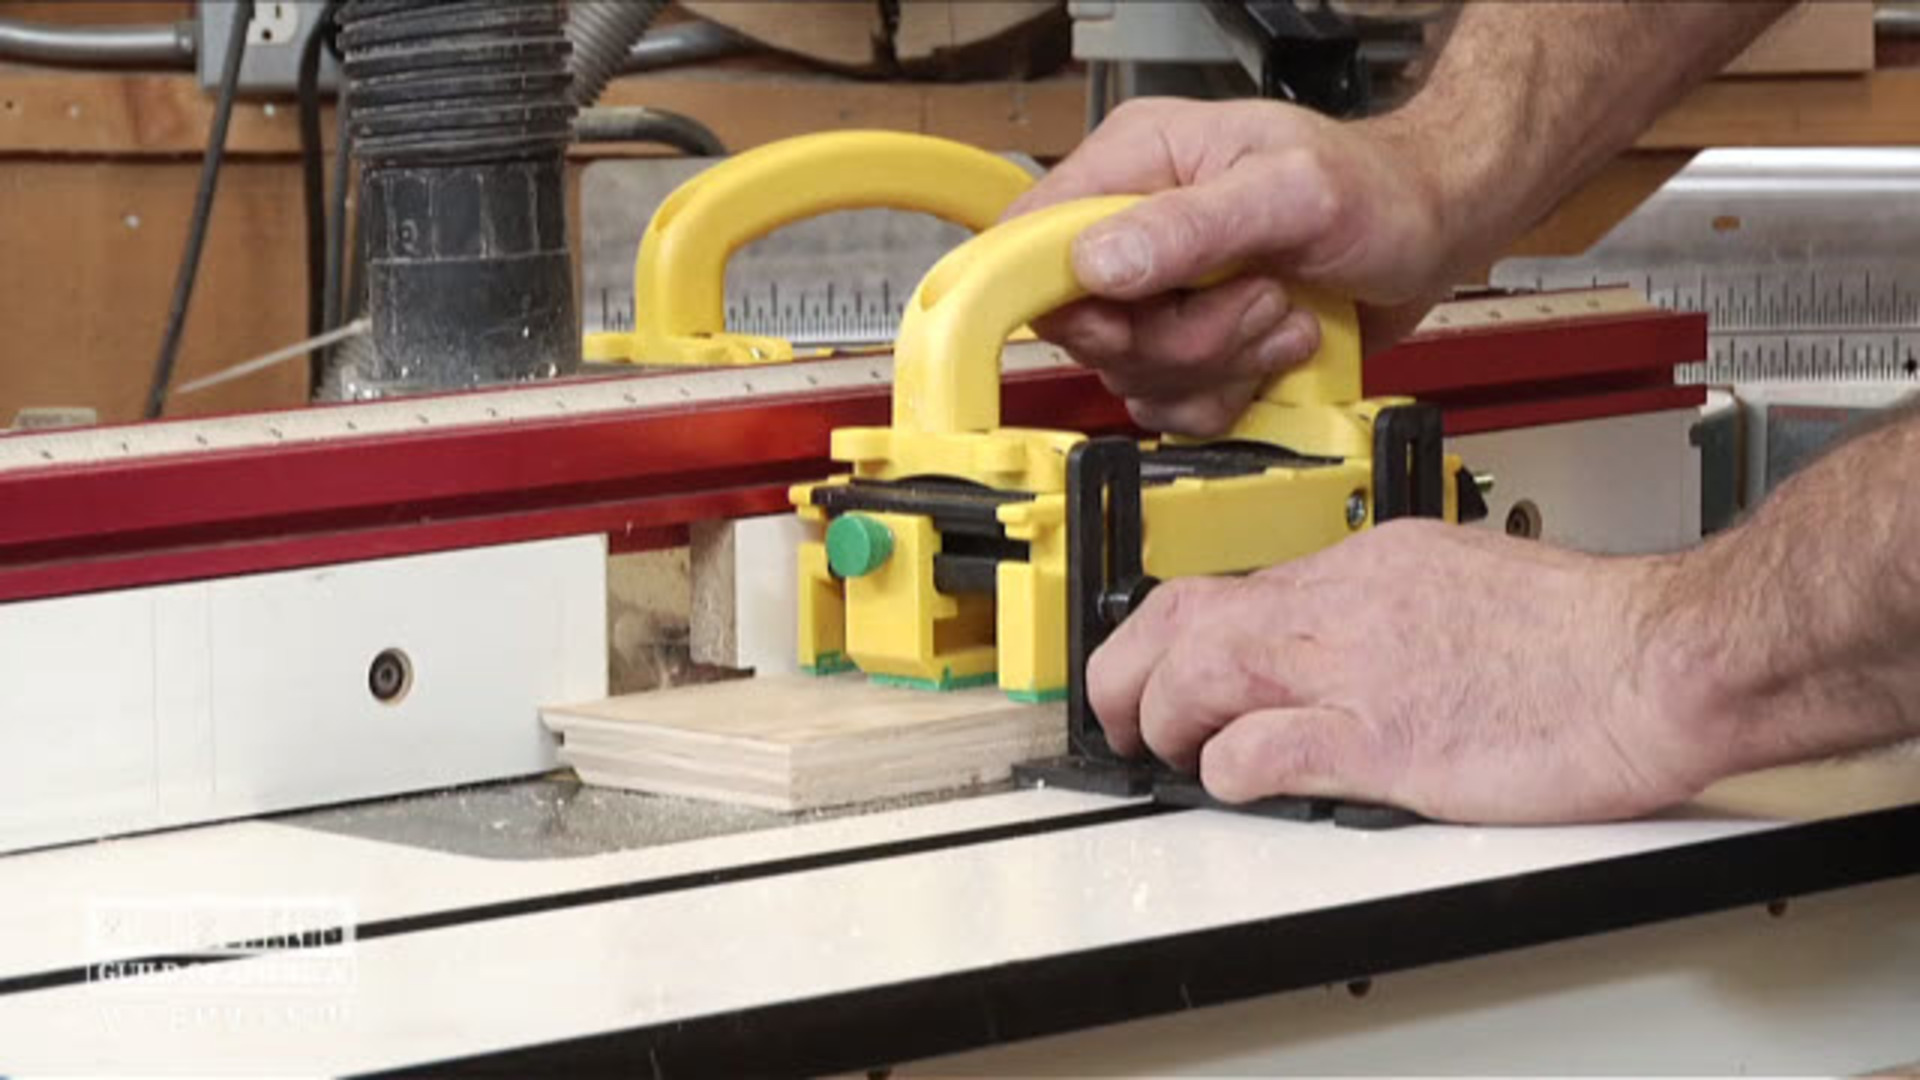 Sharpen Your Skills - Bandsaw, Router Table, and Table Saw Safety